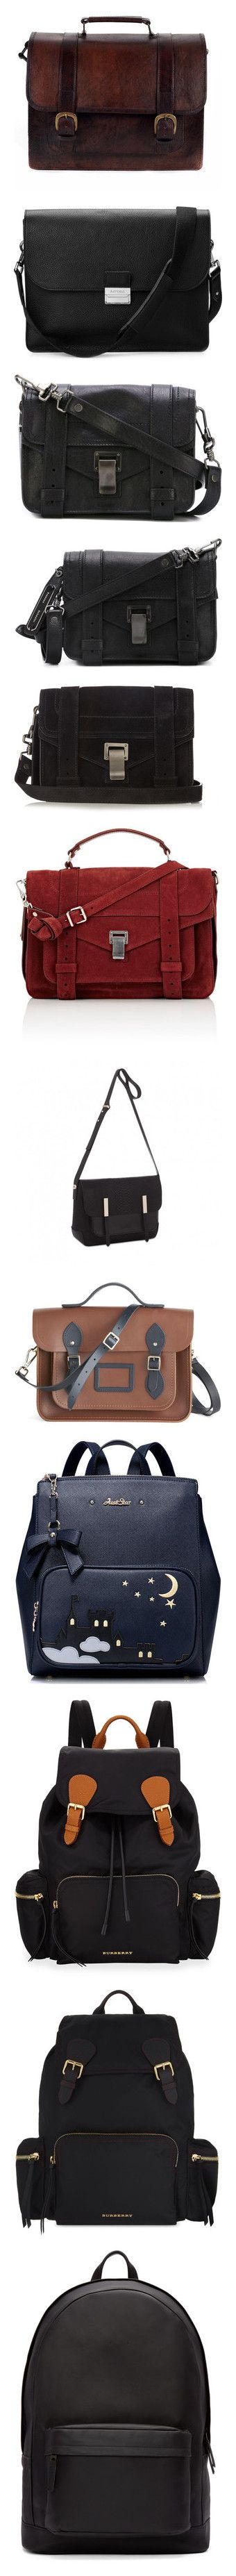 """""""Bags🎒👝👛👜💼"""" by sammy-uribe ❤ liked on Polyvore featuring bags, handbags, genuine leather purse, hand bags, man bag, leather laptop satchel, laptop handbags, messenger bags, purses and bolsas"""